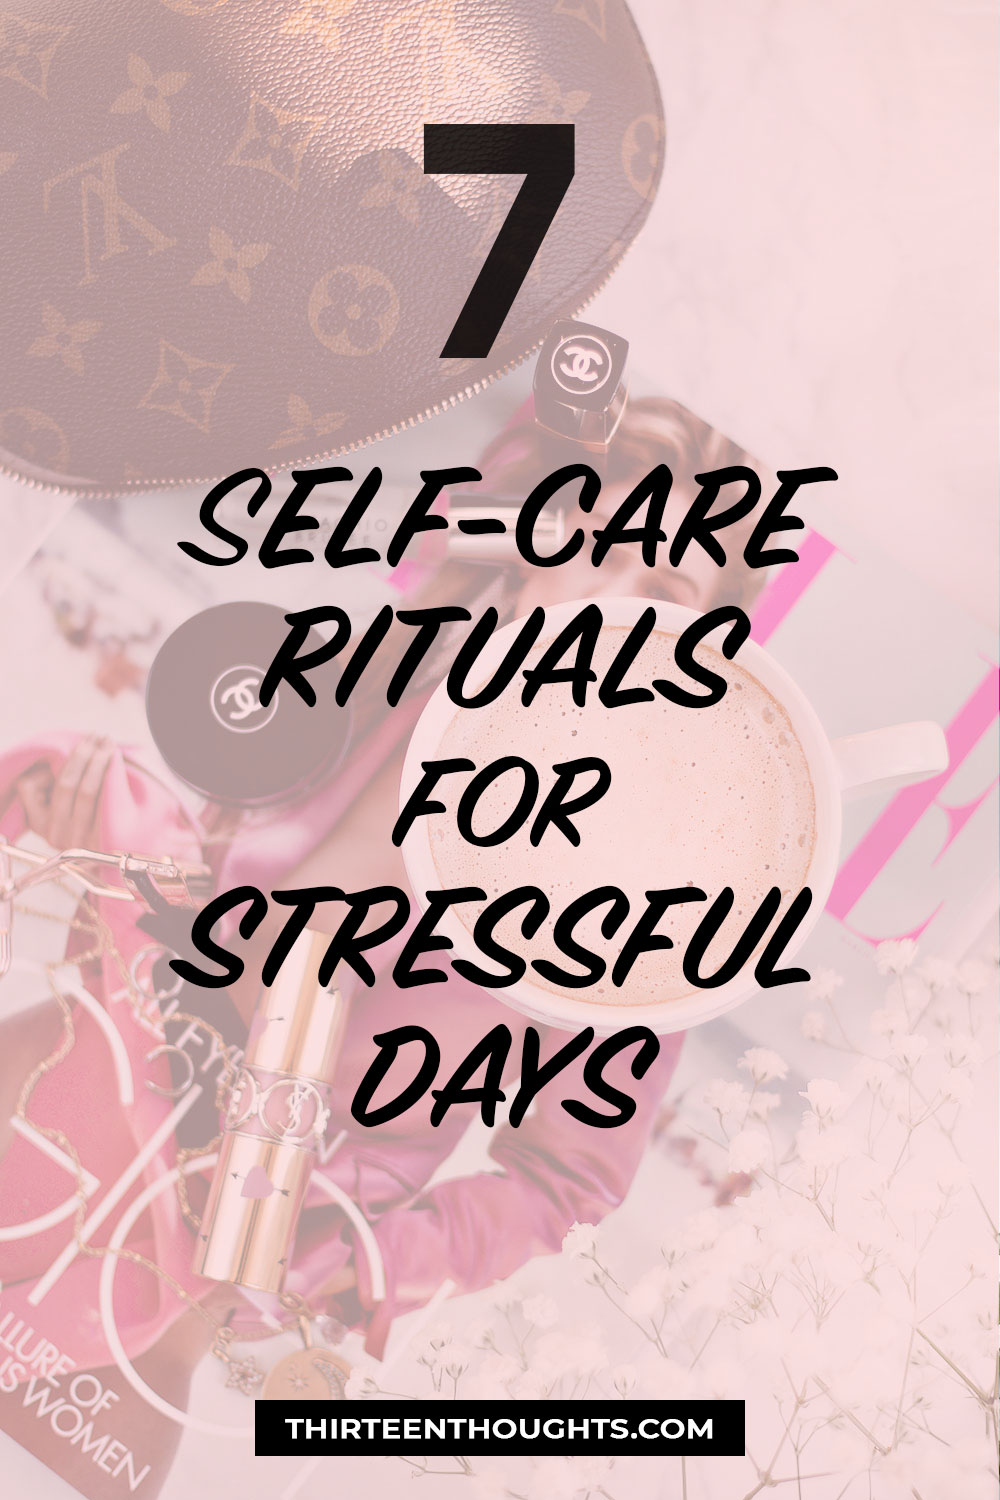 7 Self-Care Rituals for Stressful Days